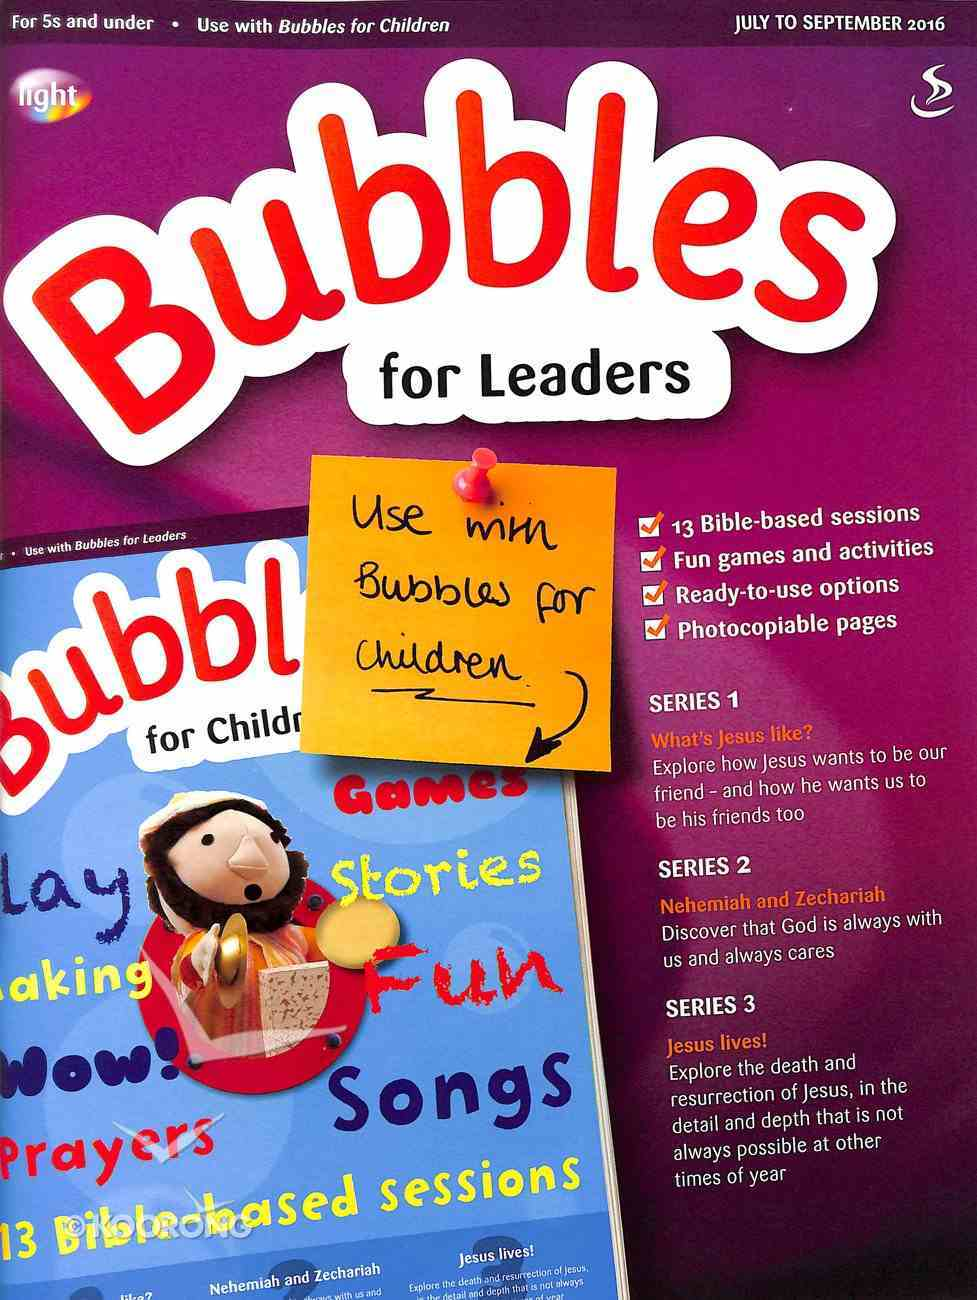 Light: Bubbles 2016 #03: Jul-Sep Teacher's Guide (5 And Under) Paperback